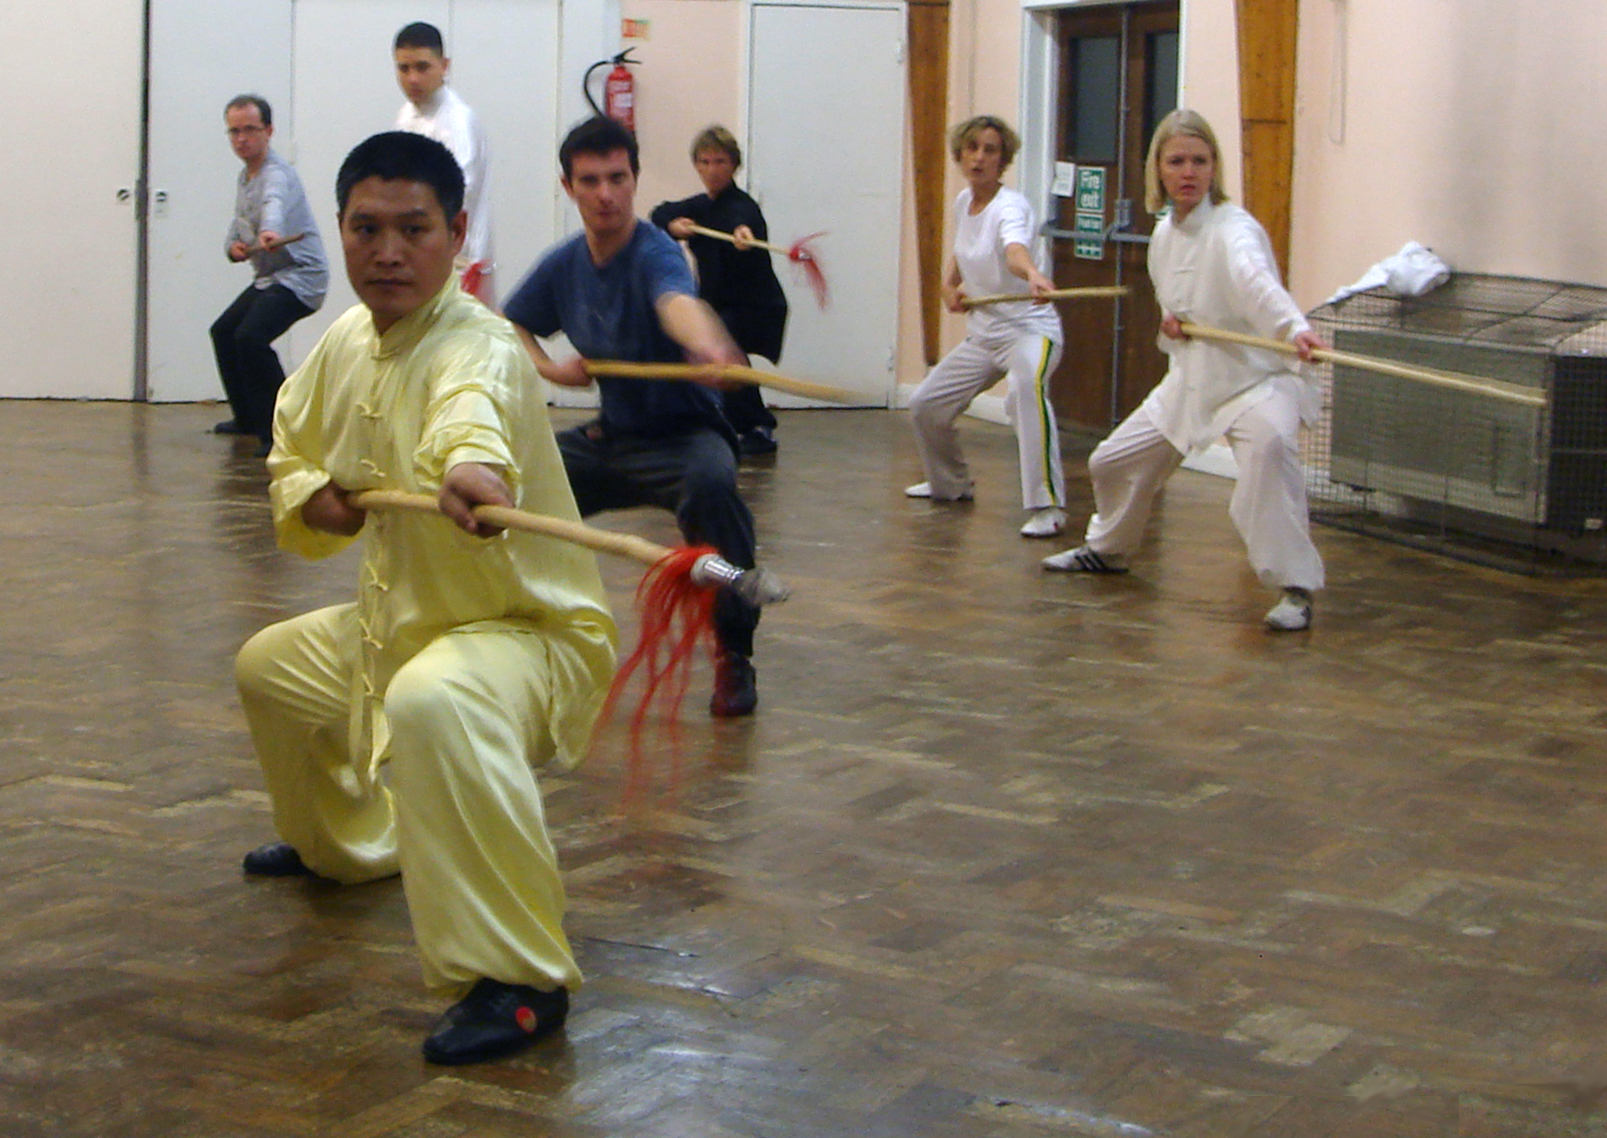 Teaching spear form to a group of students in a hall